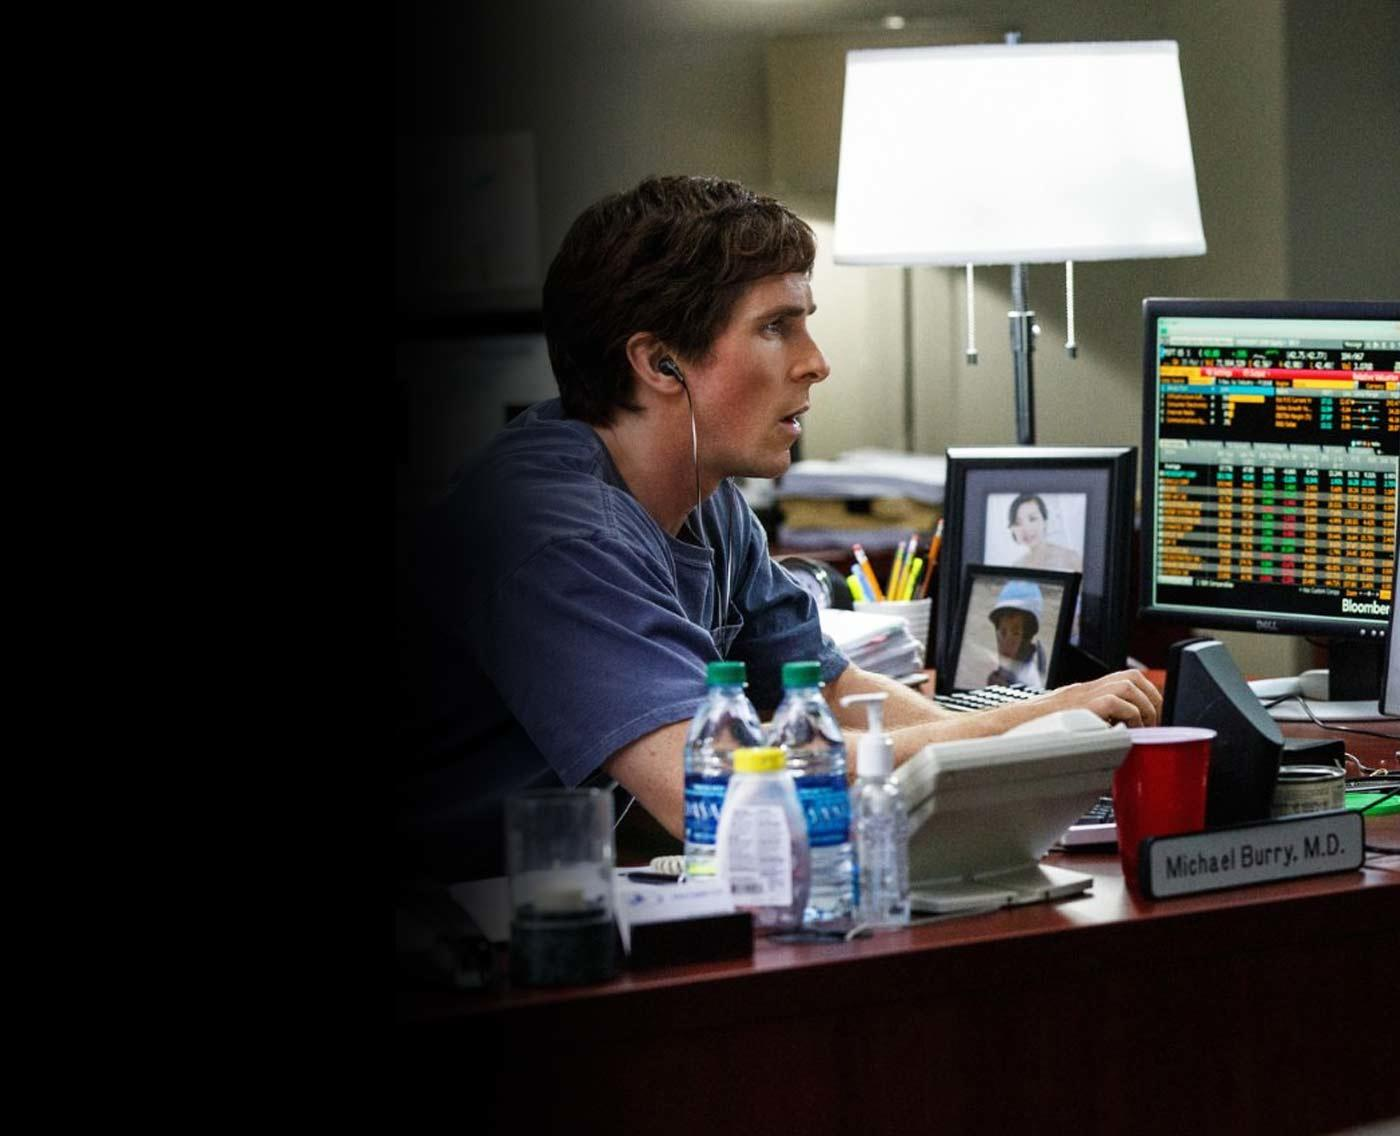 Check out the movie photos of 'The Big Short'